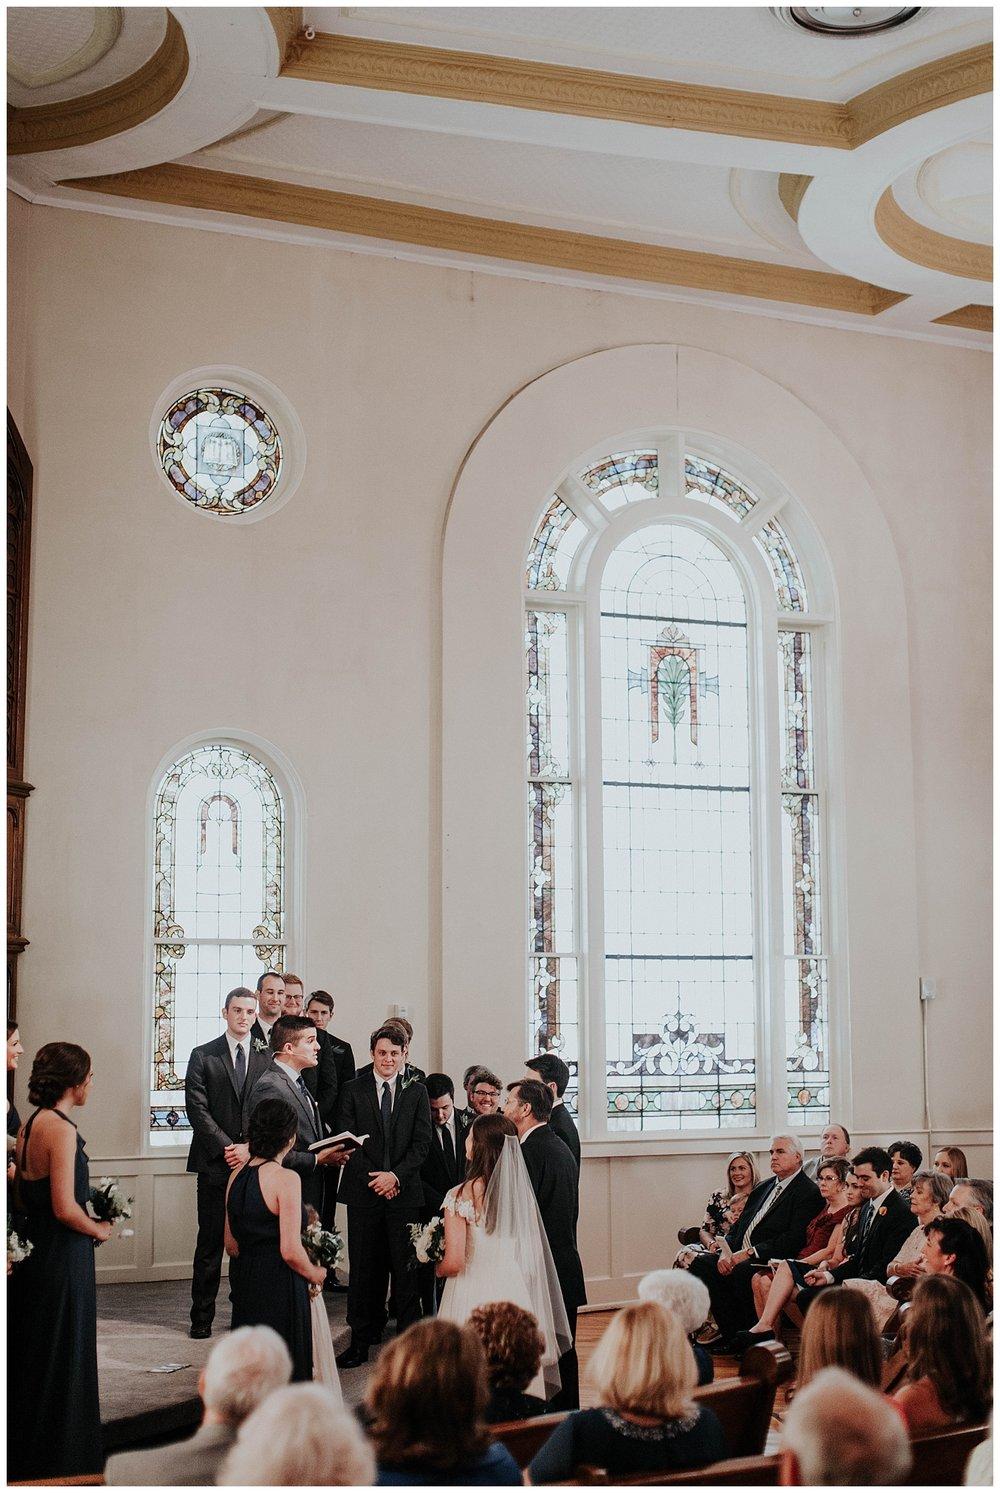 Madalynn Young Photography | Sarah Catherine + Will | Bridge Street Gallery and Loft | Atlanta Wedding Photographer_0375.jpg